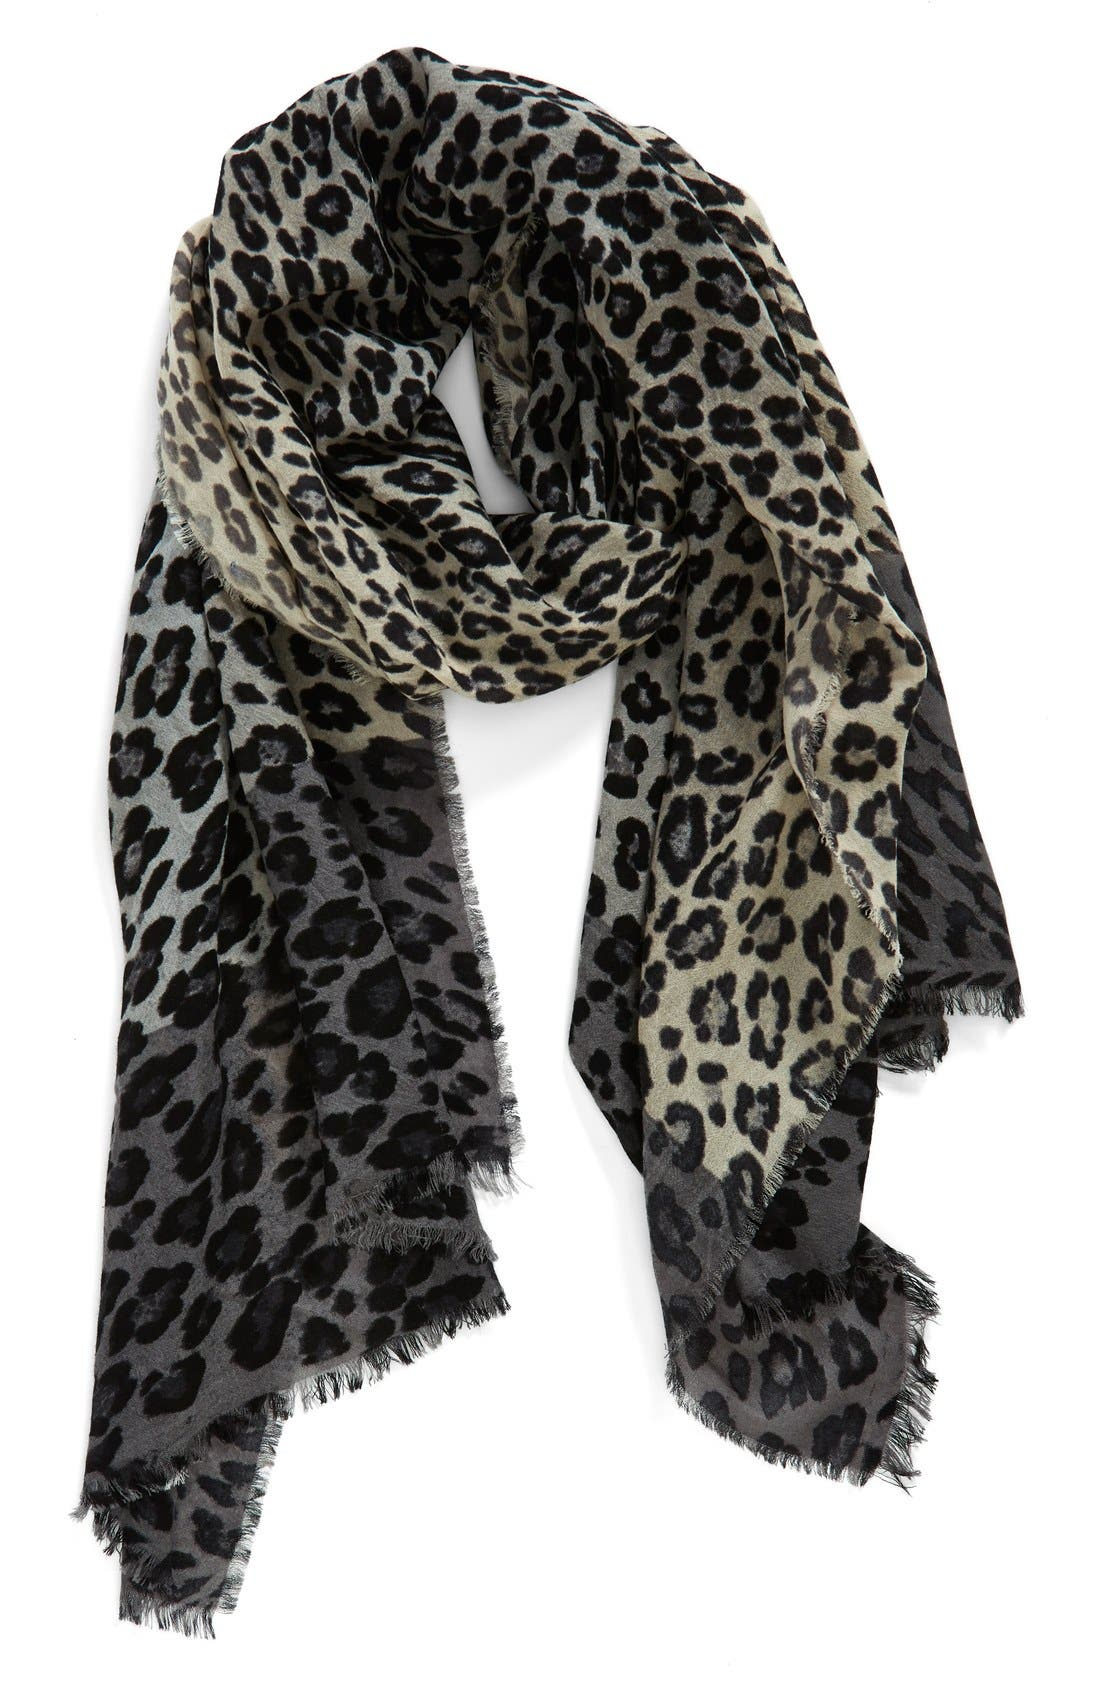 NORDSTROM, 'Luxe Animal' Challis Scarf, Main thumbnail 1, color, 020